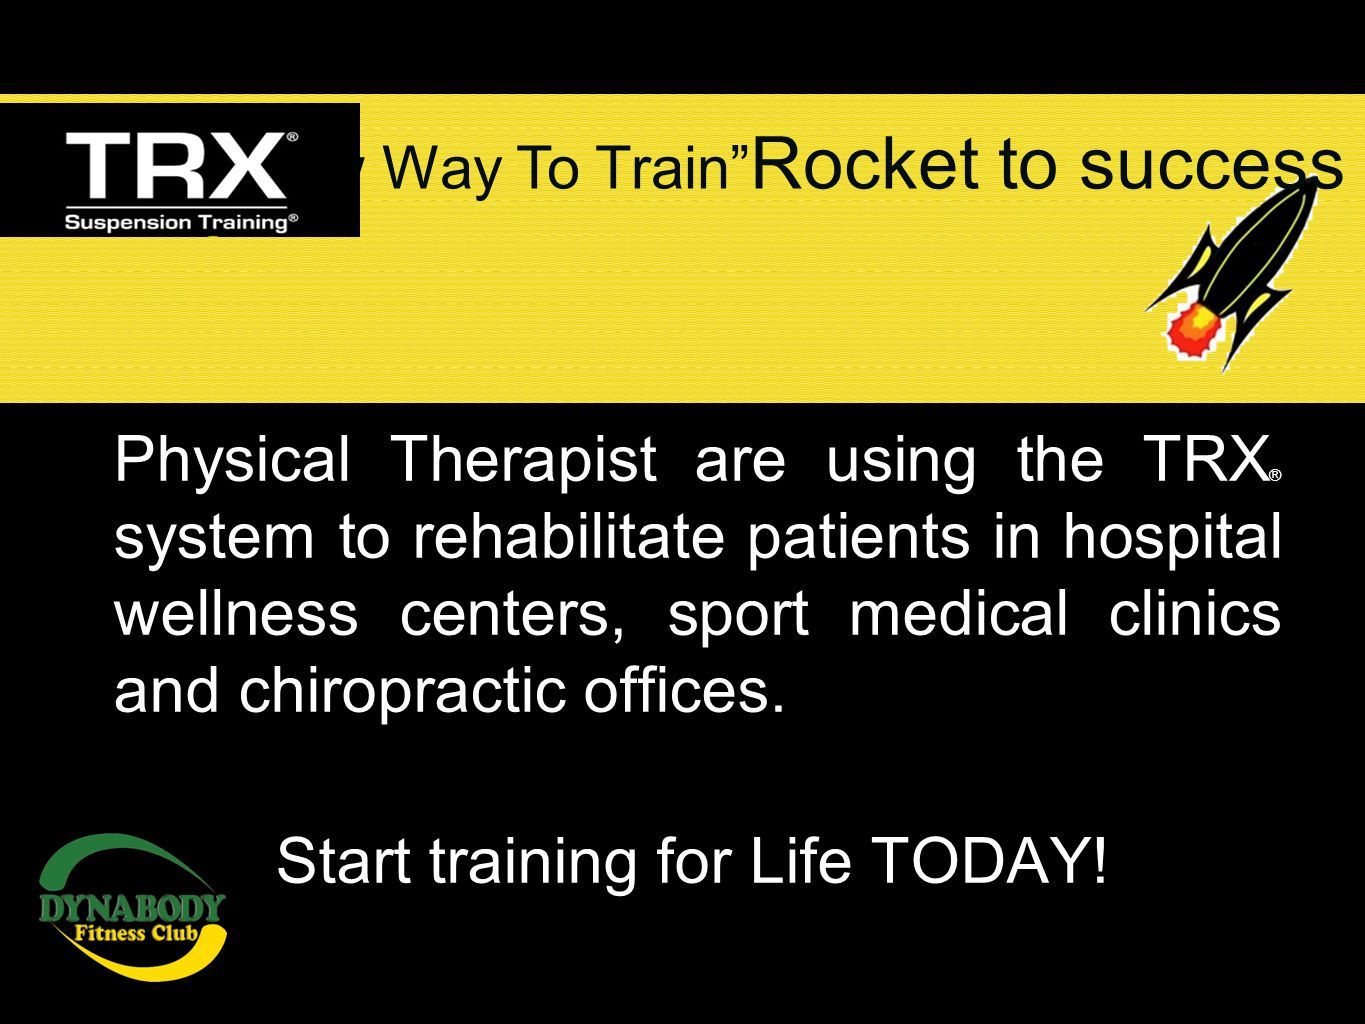 Physical Therapist are using the TRX ® system to rehabilitate patients in hospital wellness centers, sport medical clinics and chiropractic offices. –